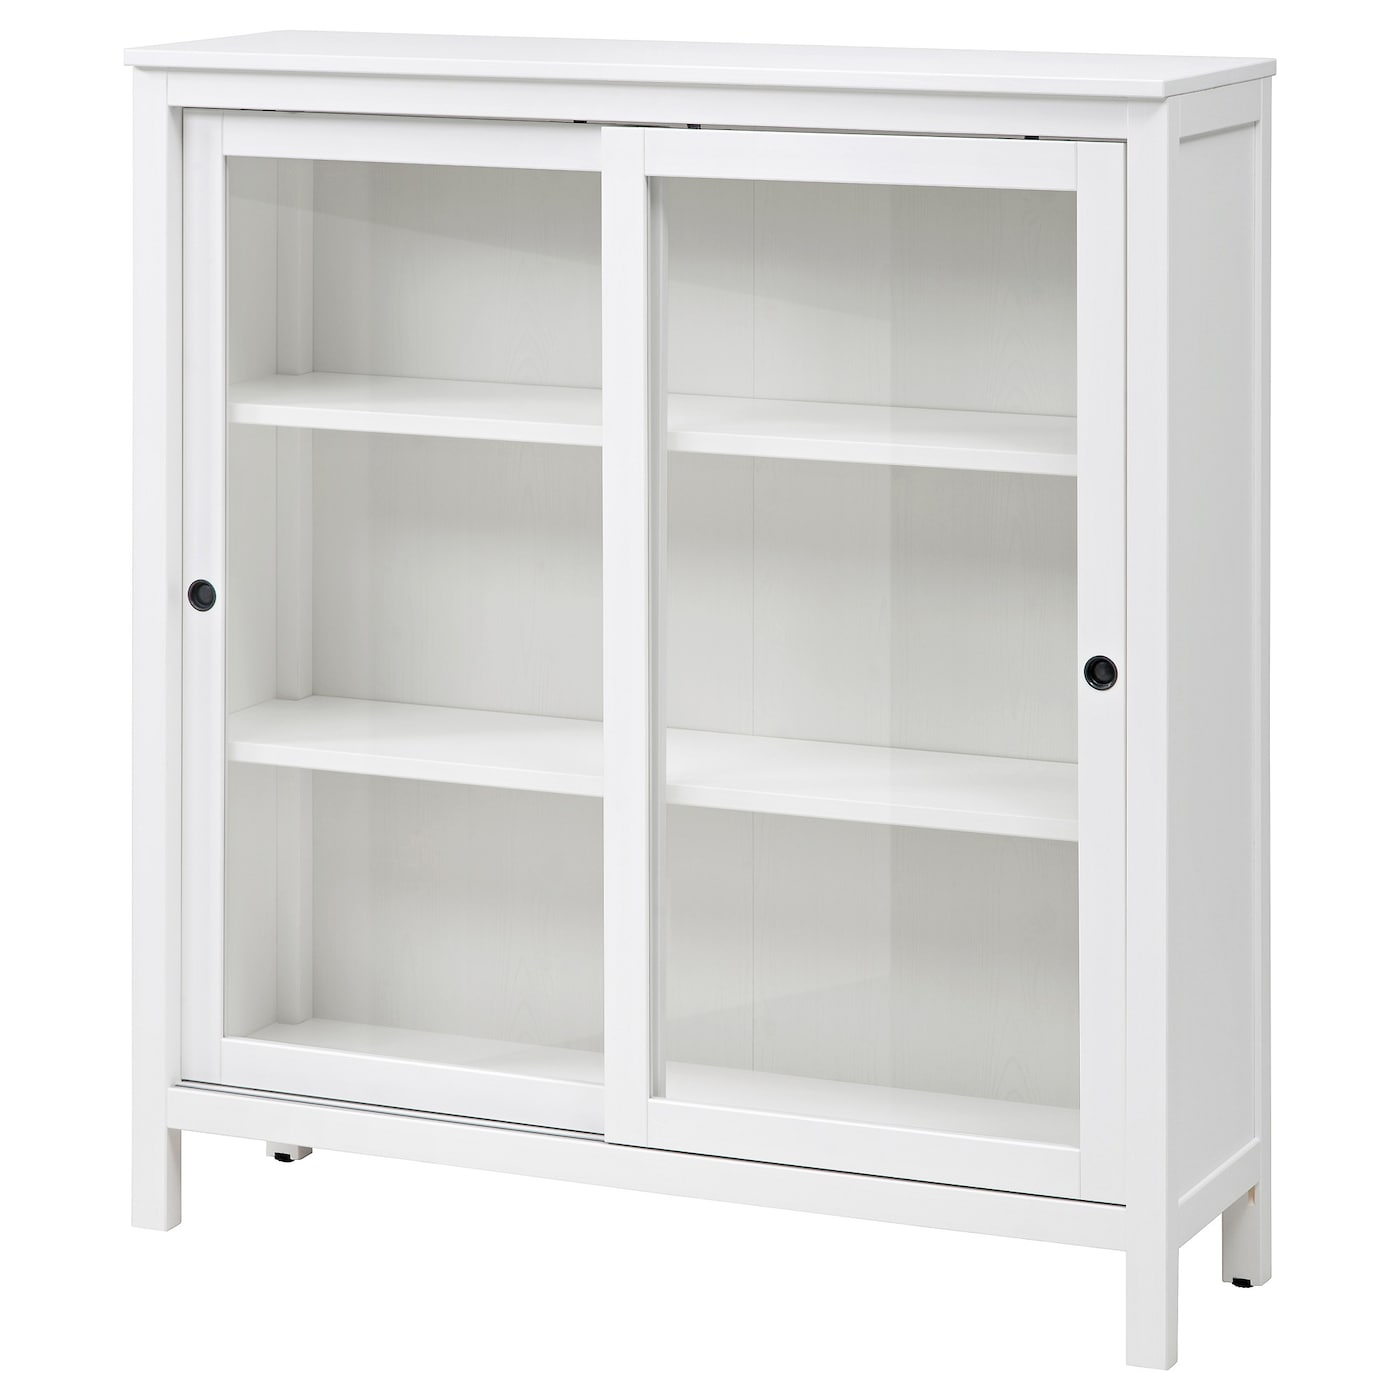 Charmant Home » White Glass Cabinet. Everybody Got Hope Of Experiencing A Luxury  Wish House As Well As Wonderful But Having Limited Money As Well As  Constrained Land ...